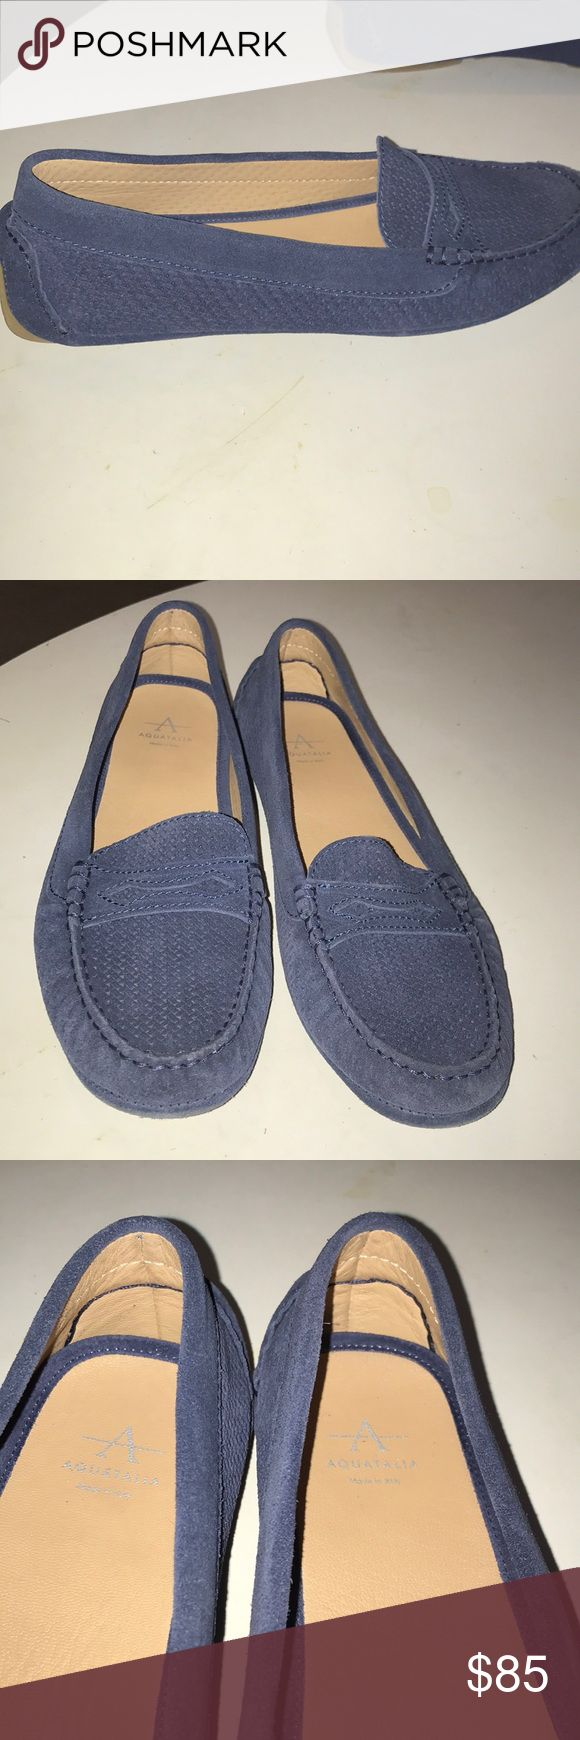 Aquatalua loafers Suede blue penny loafers. Perforated design. Upper vamp coin slot. Rubber backing on heels. Rubber signature soles. Leather cushiony lining. Super comfy & cute. Great quality loafers. Great condition Aquatalia Shoes Flats & Loafers